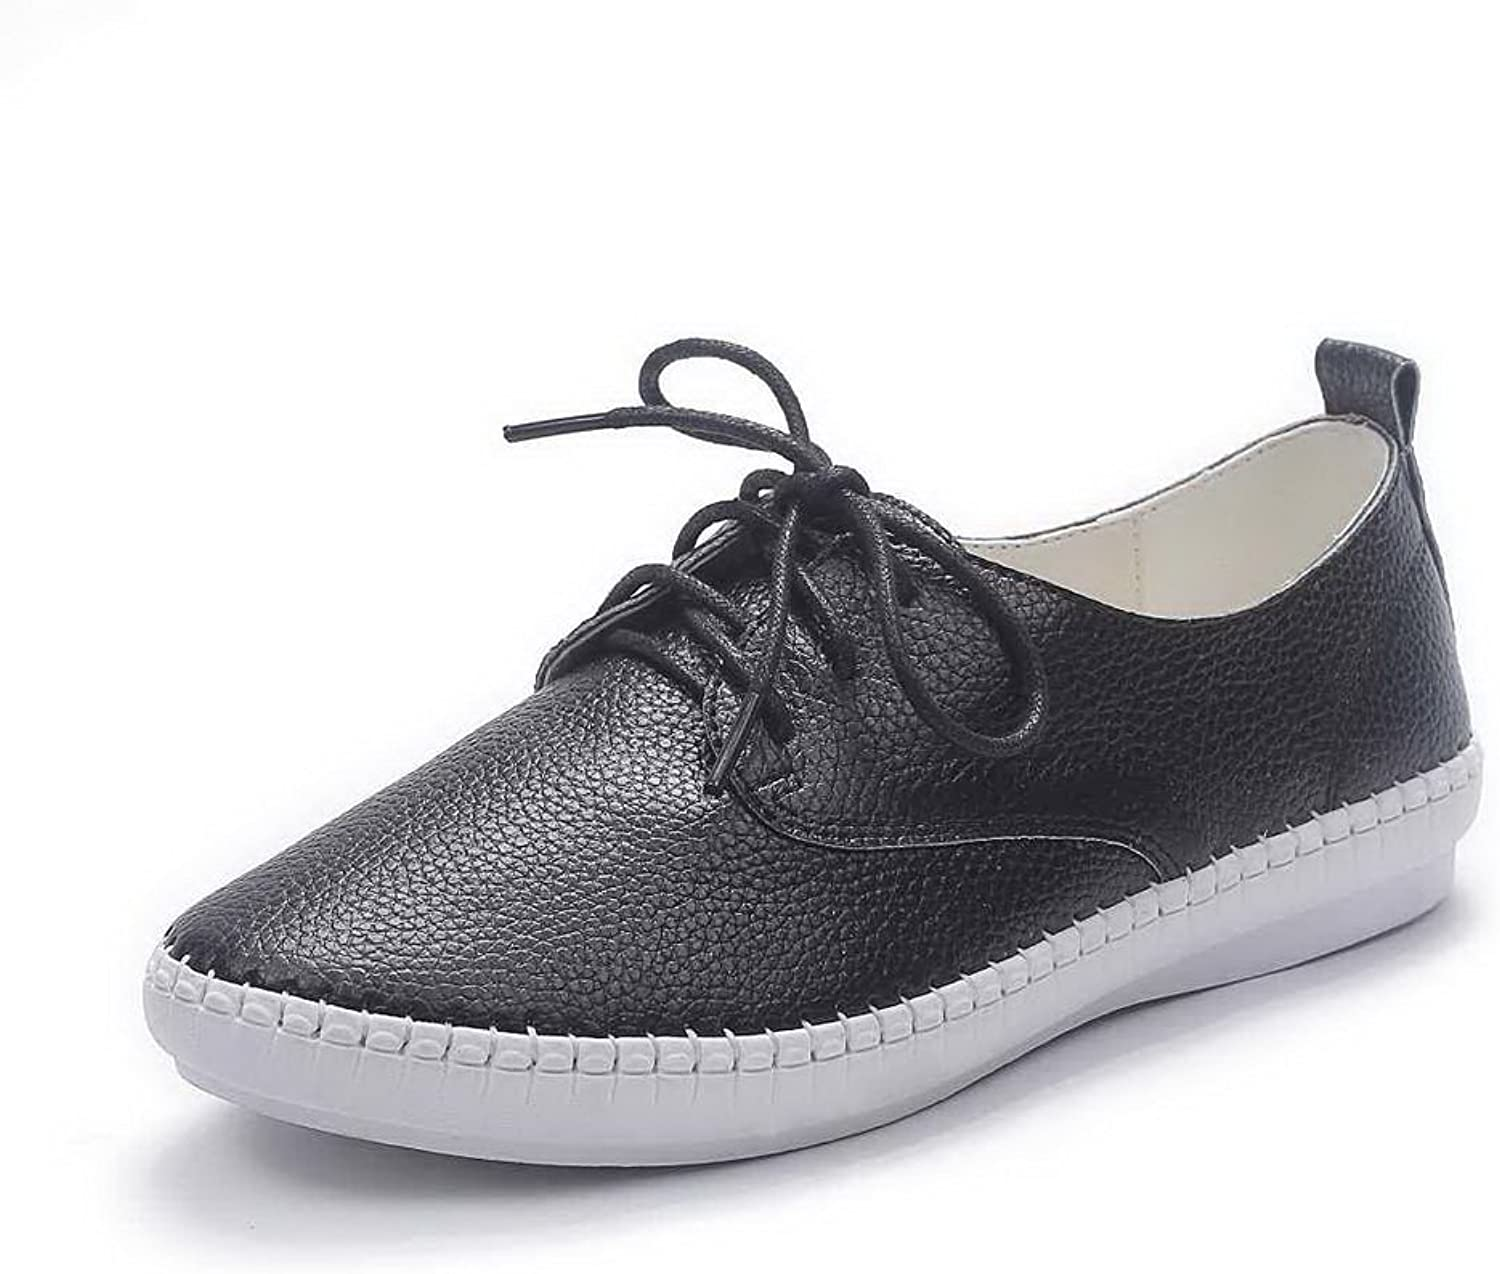 AdeeSu Girls Lace-Up Low Heels Casual Leather Pumps shoes